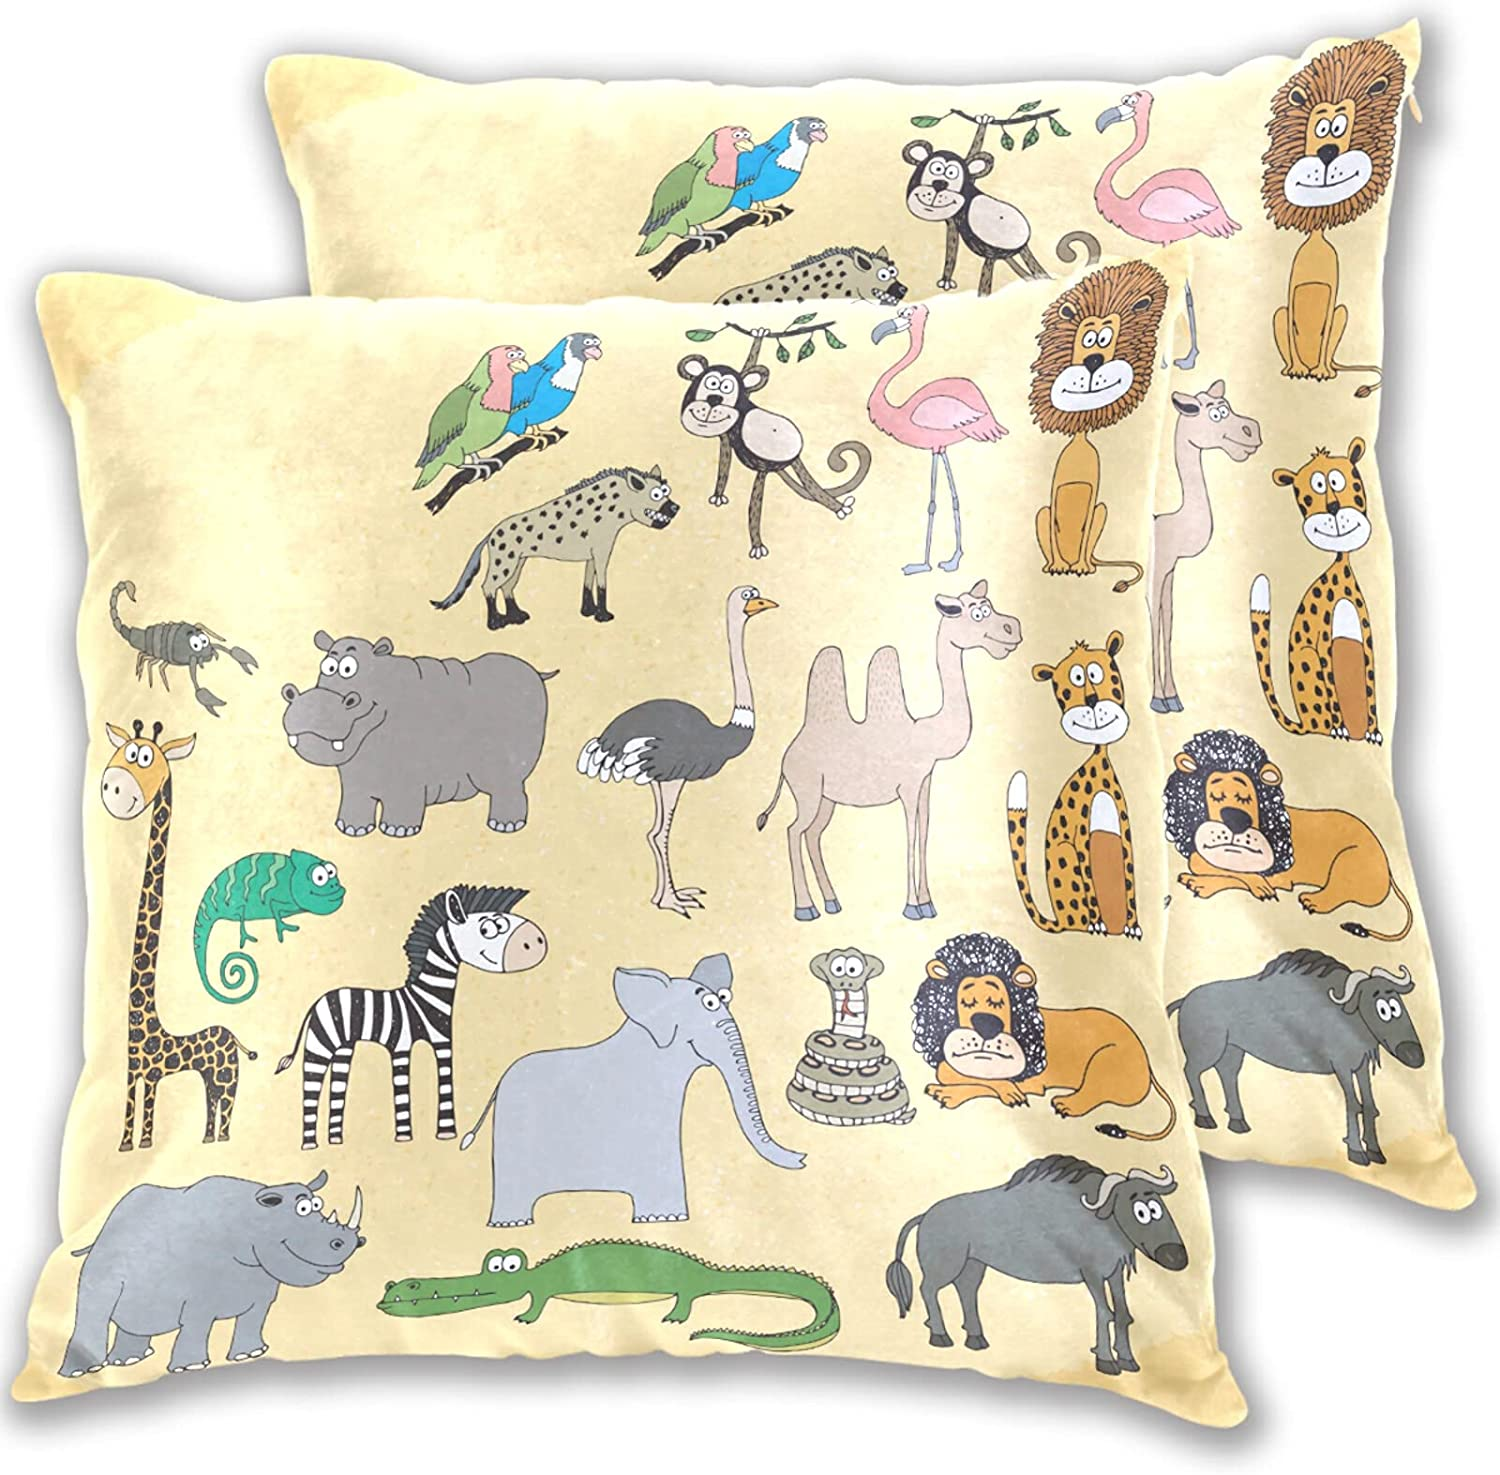 Dzkopi Cute Funny Animals Africa Pillowcase Covers 2-Piece Kids